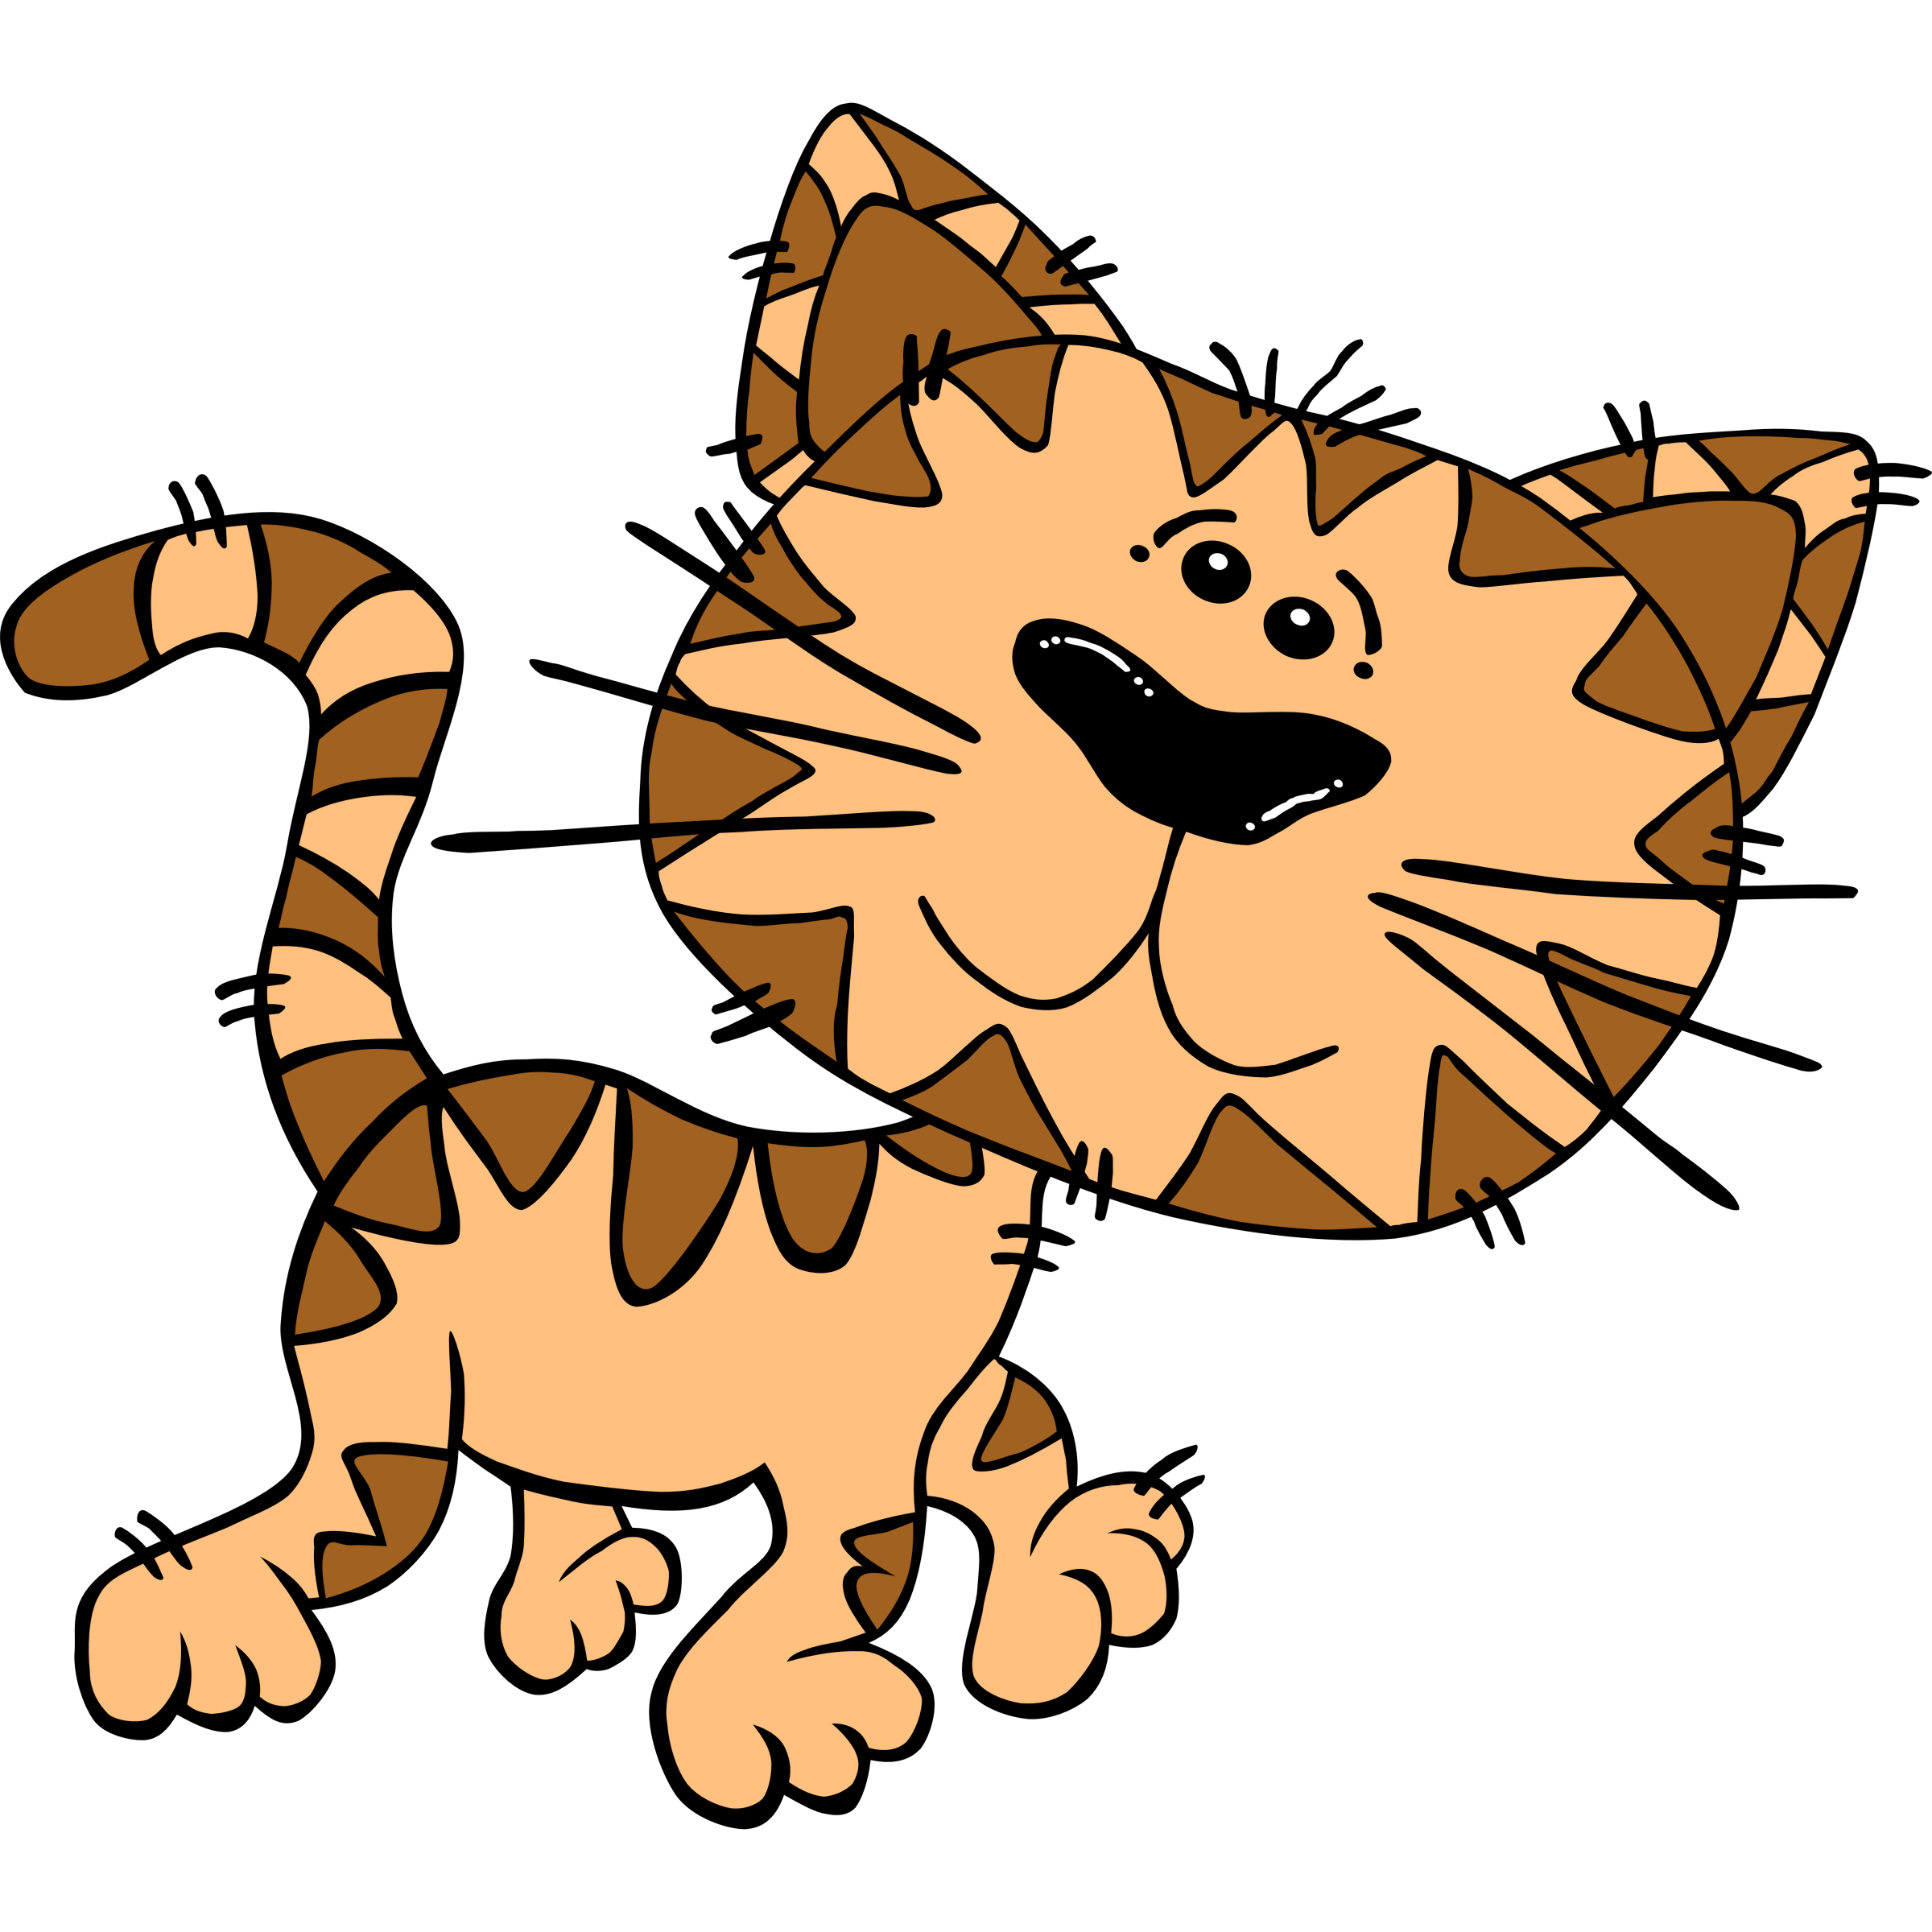 Funny Cat Cartoon Clip Art.